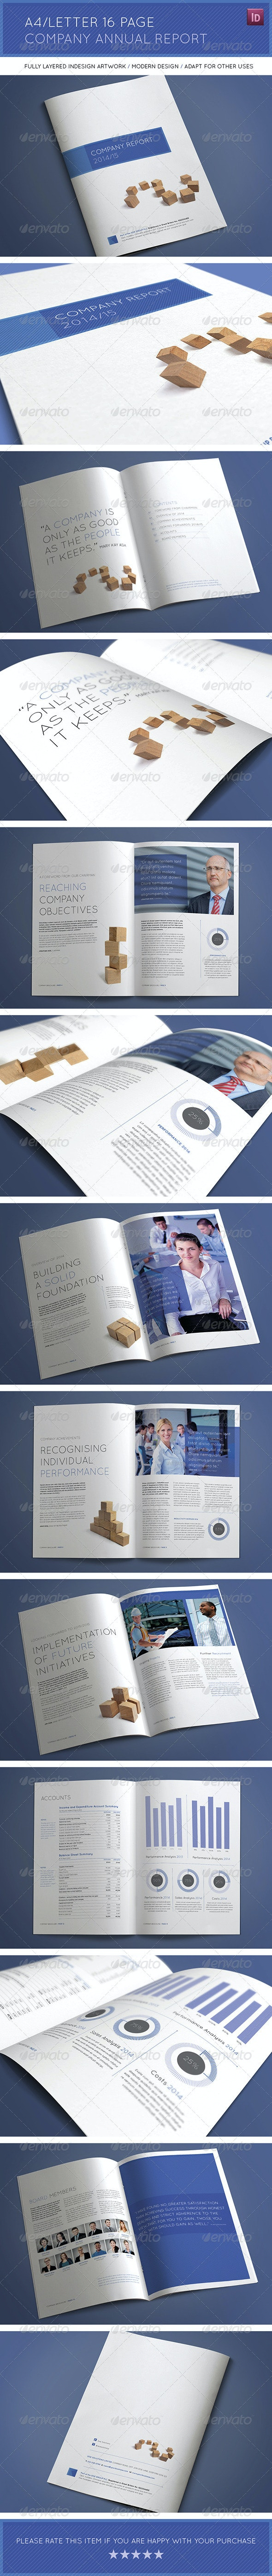 A4/Letter 16 Page Company Annual Report - Corporate Brochures